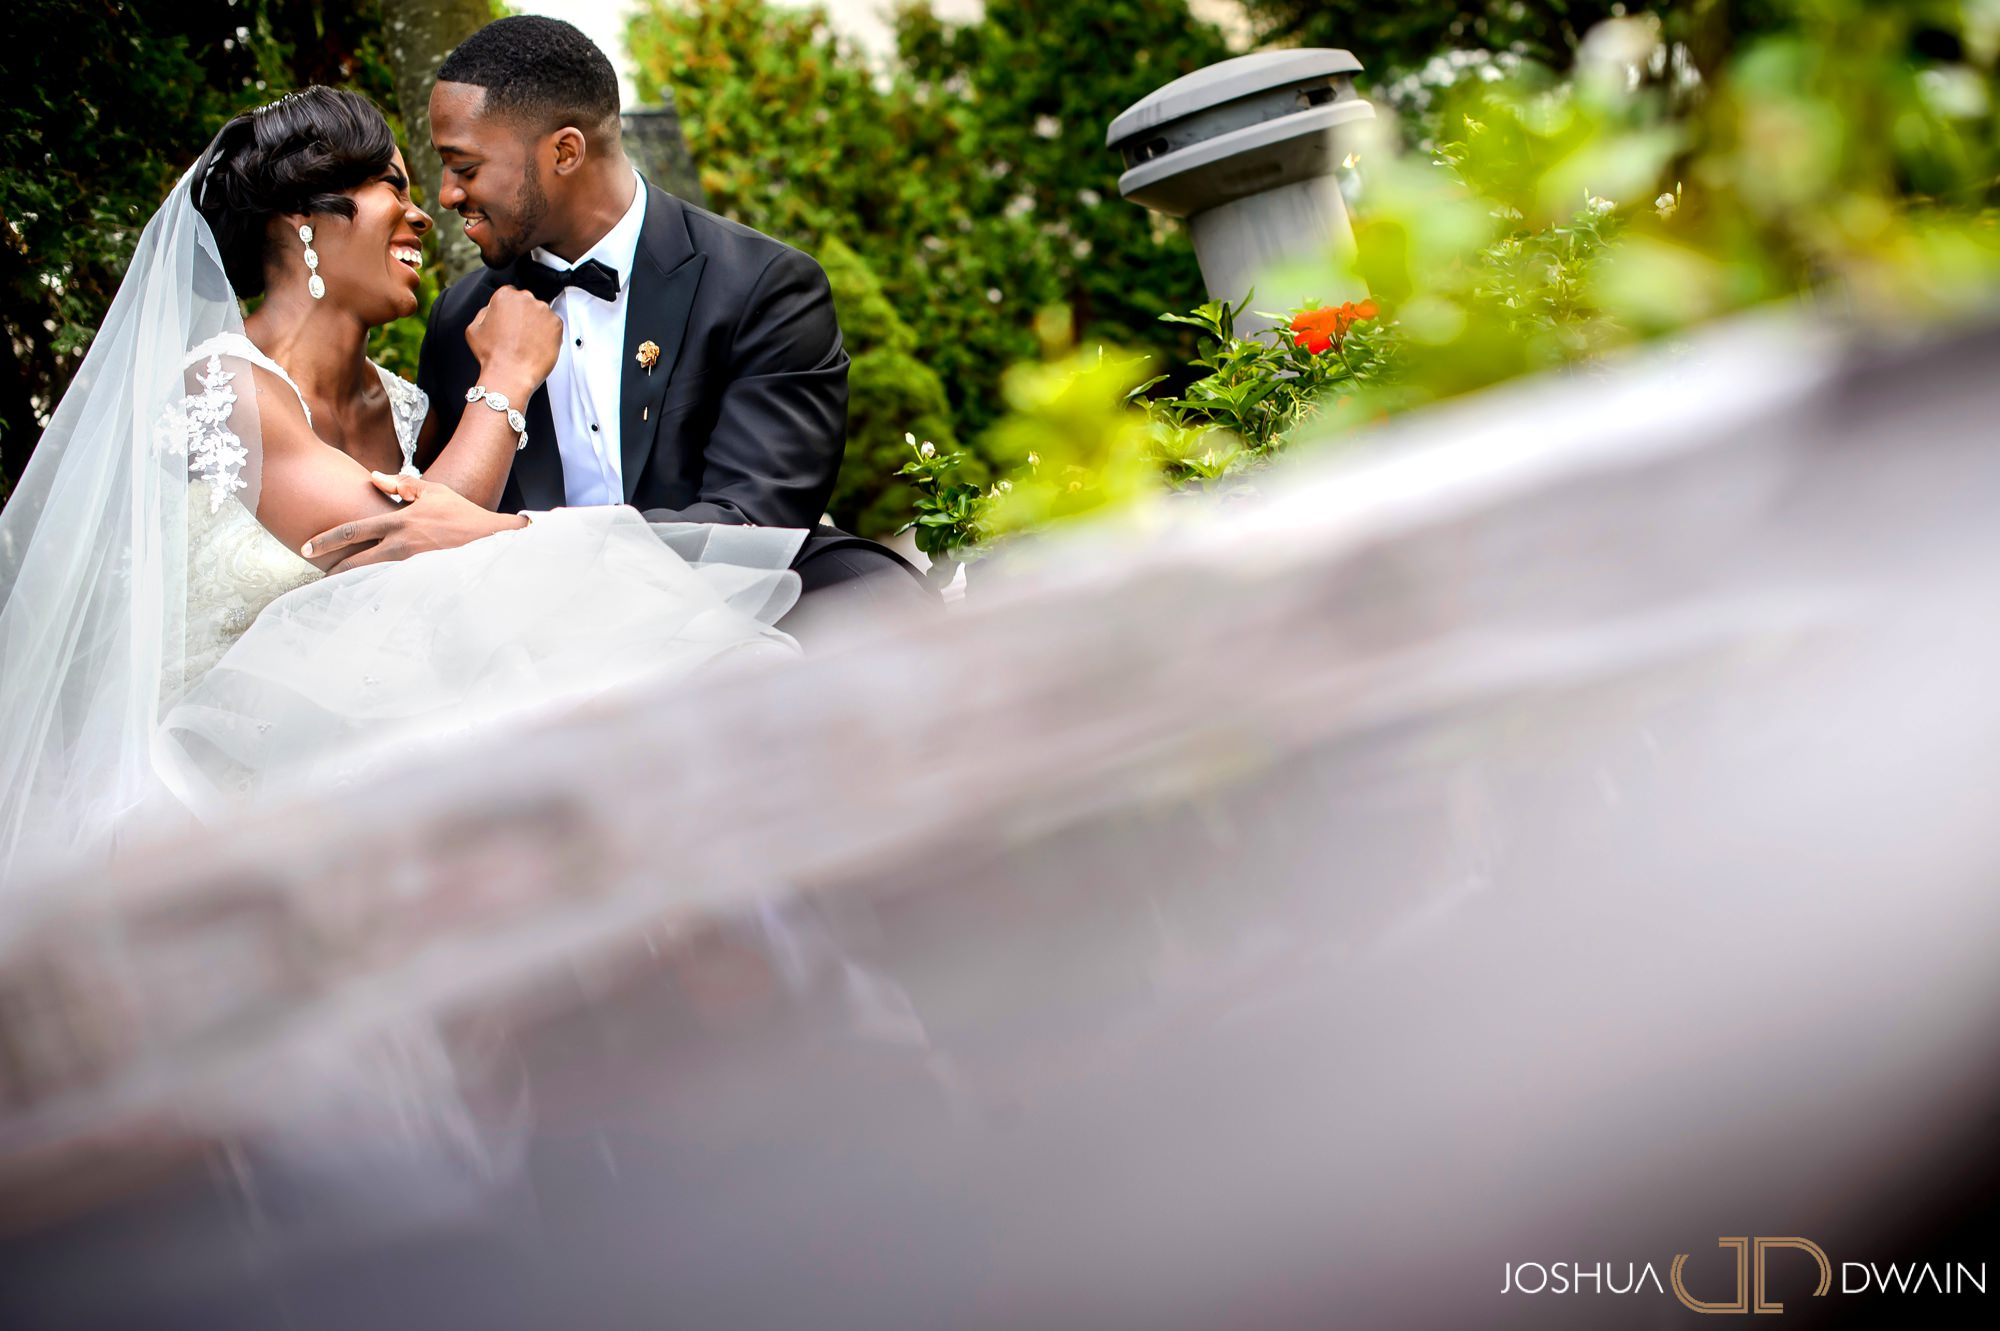 stephanie-richard-01-westmount-country-club-joshua-dwain-nj-wedding-photography